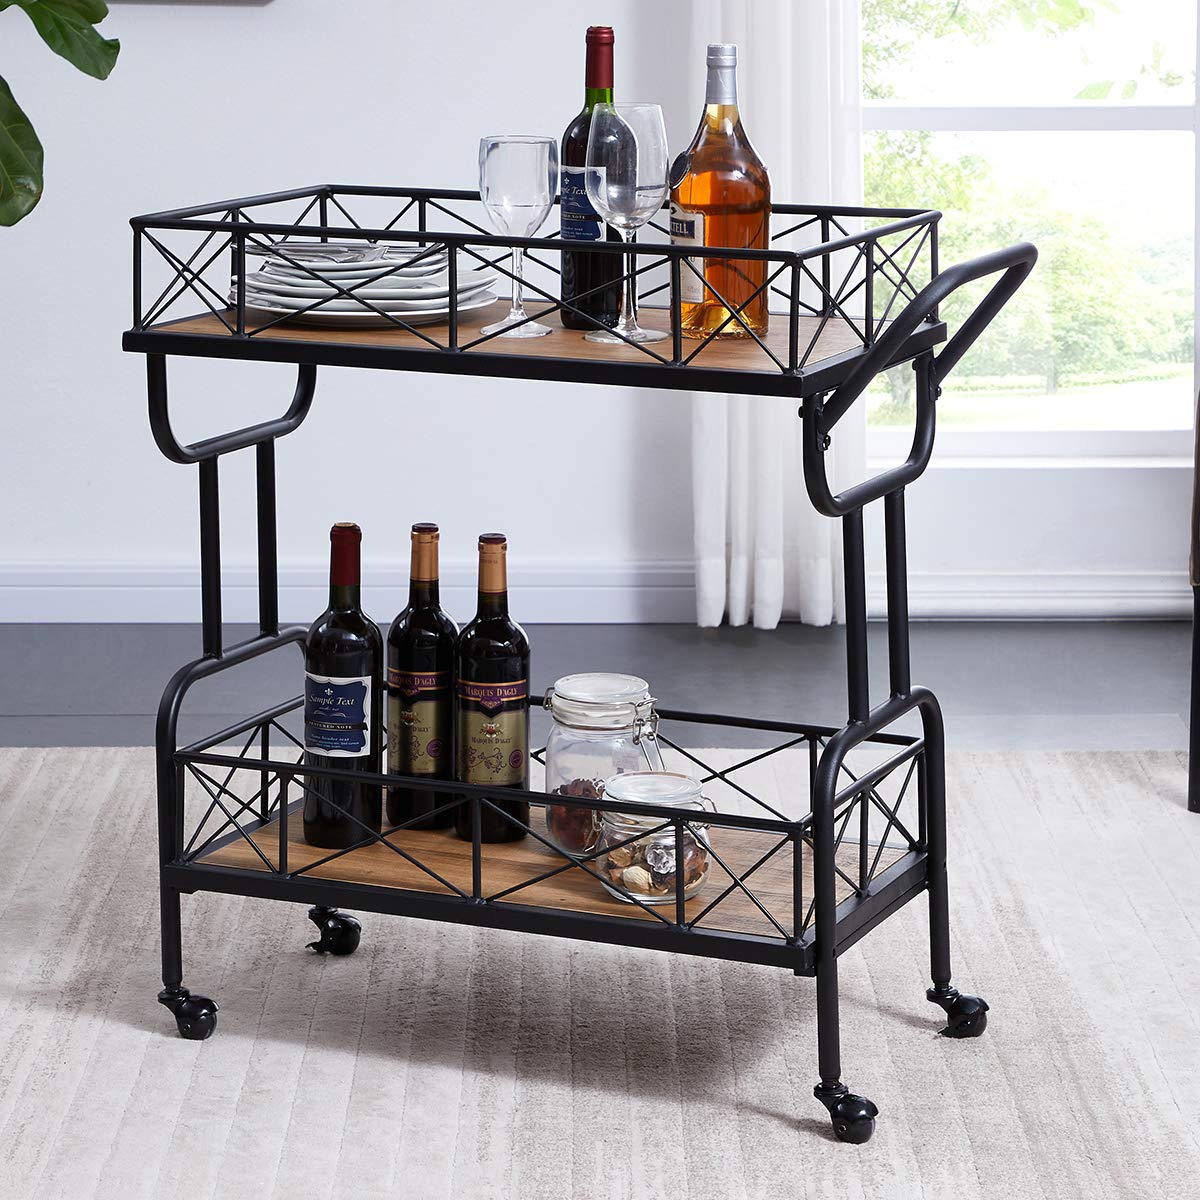 Homissue Kitchen Bar Cart on Wheels, Industrial Style Rolling Serving Bar Cart with Rack, Brown by Homissue